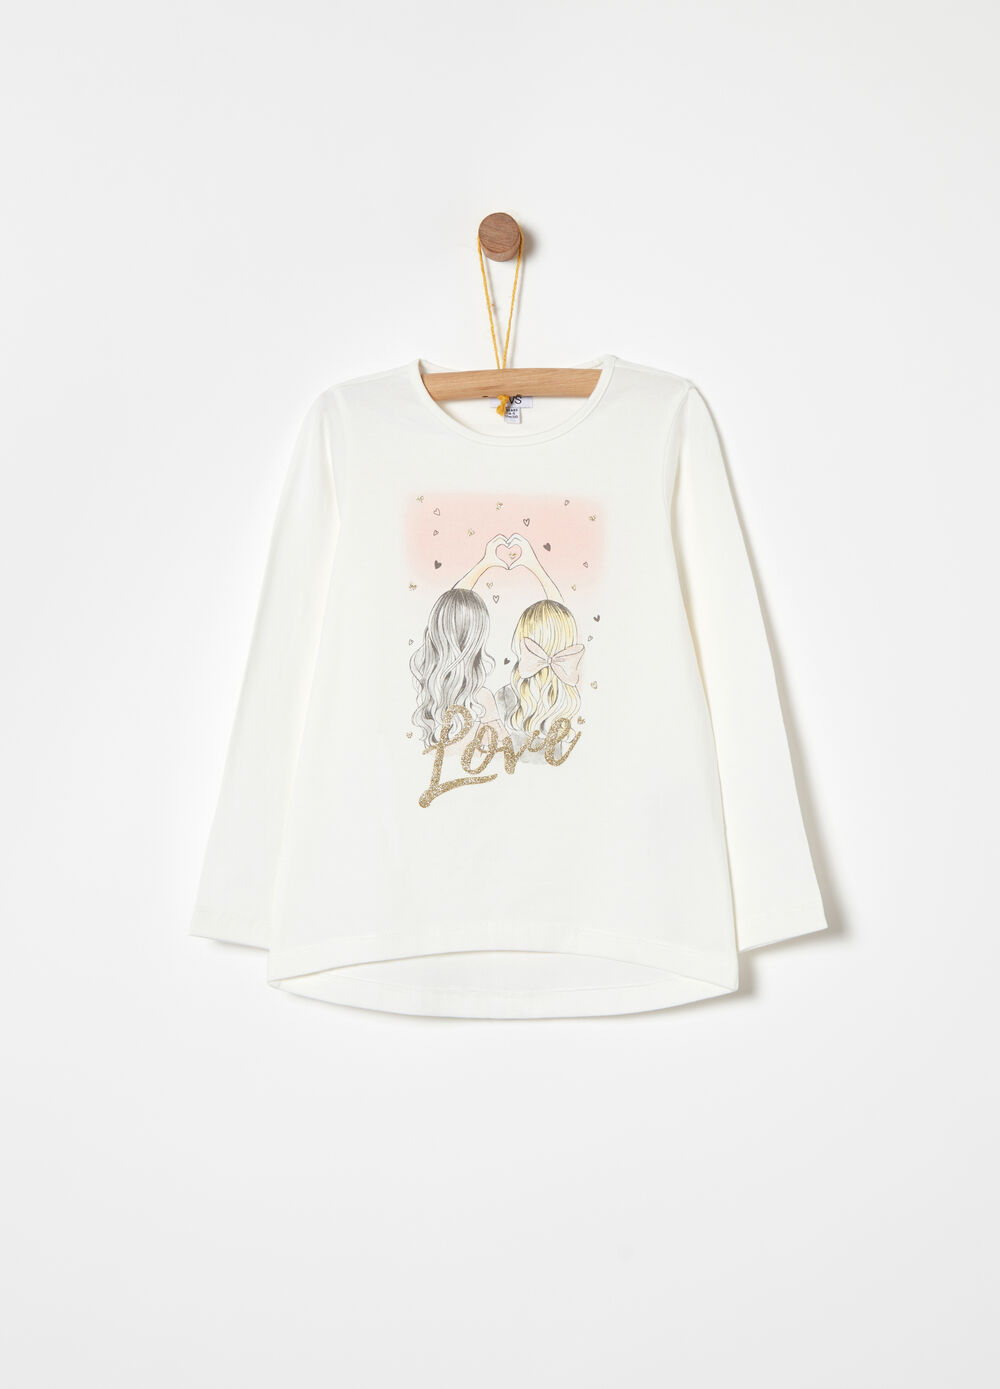 Peach-skin jersey T-shirt with glitter details